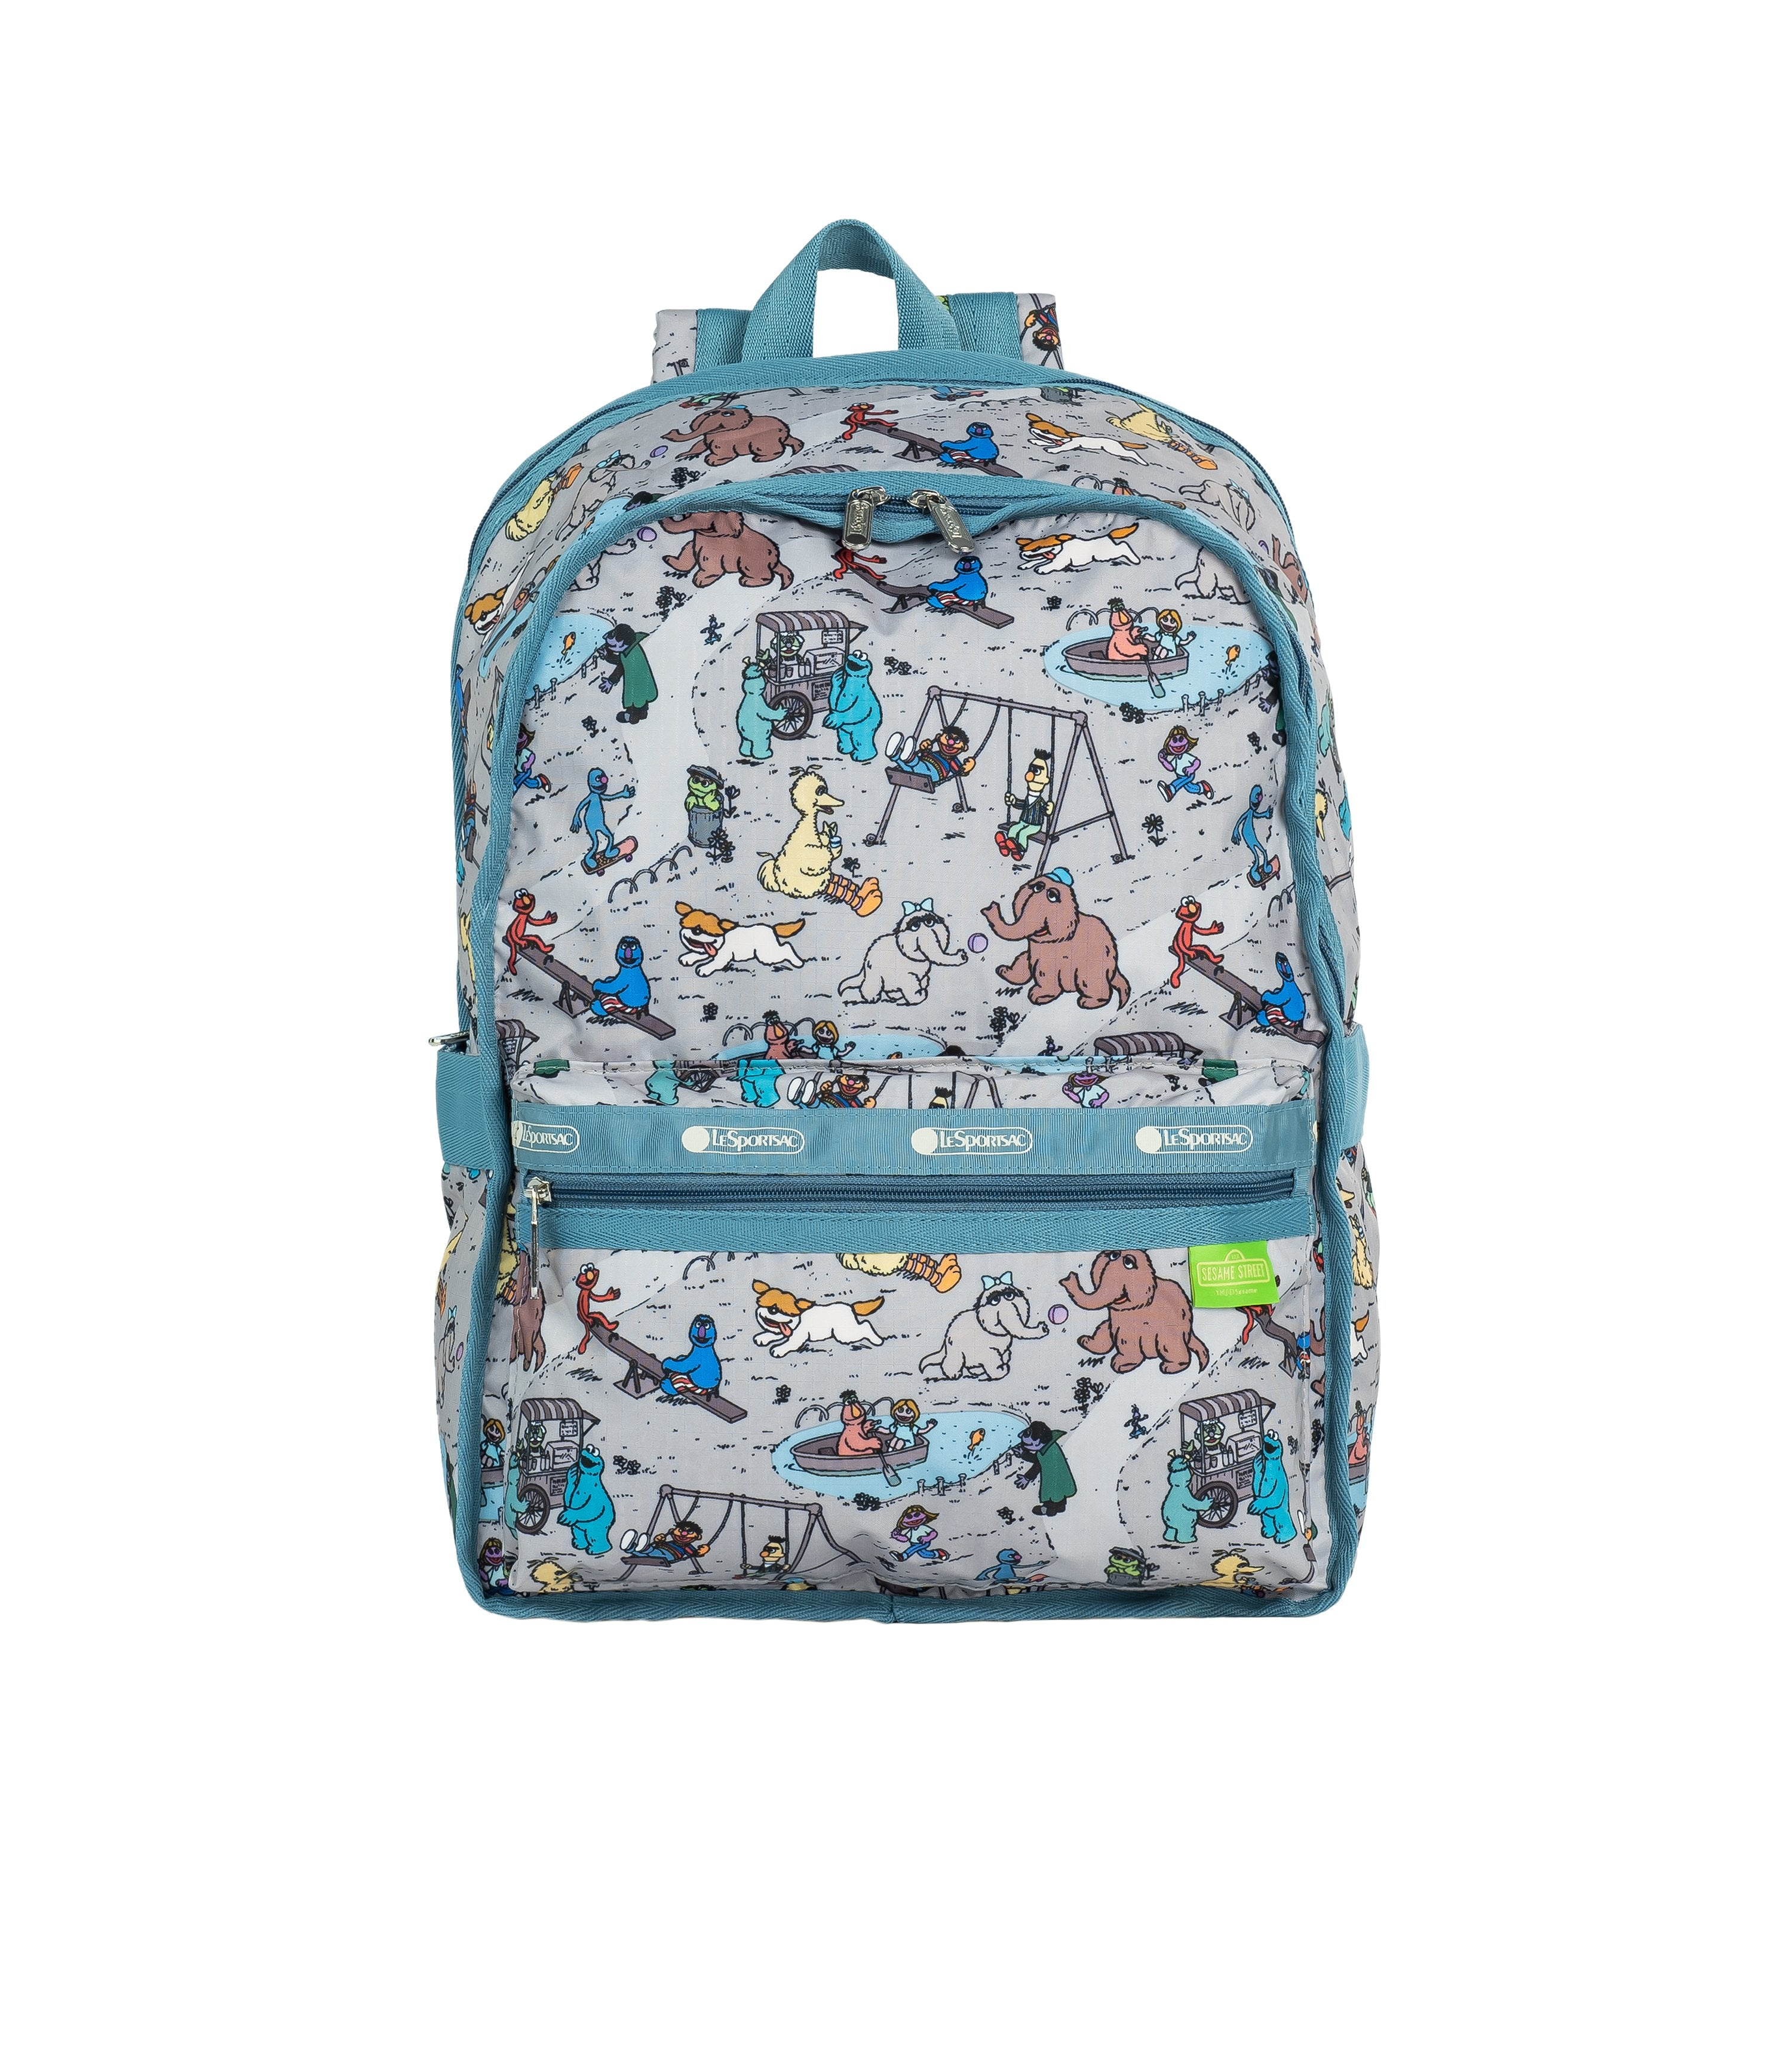 LeSportsac - Backpacks - Classic Large Backpack - Sesame Park